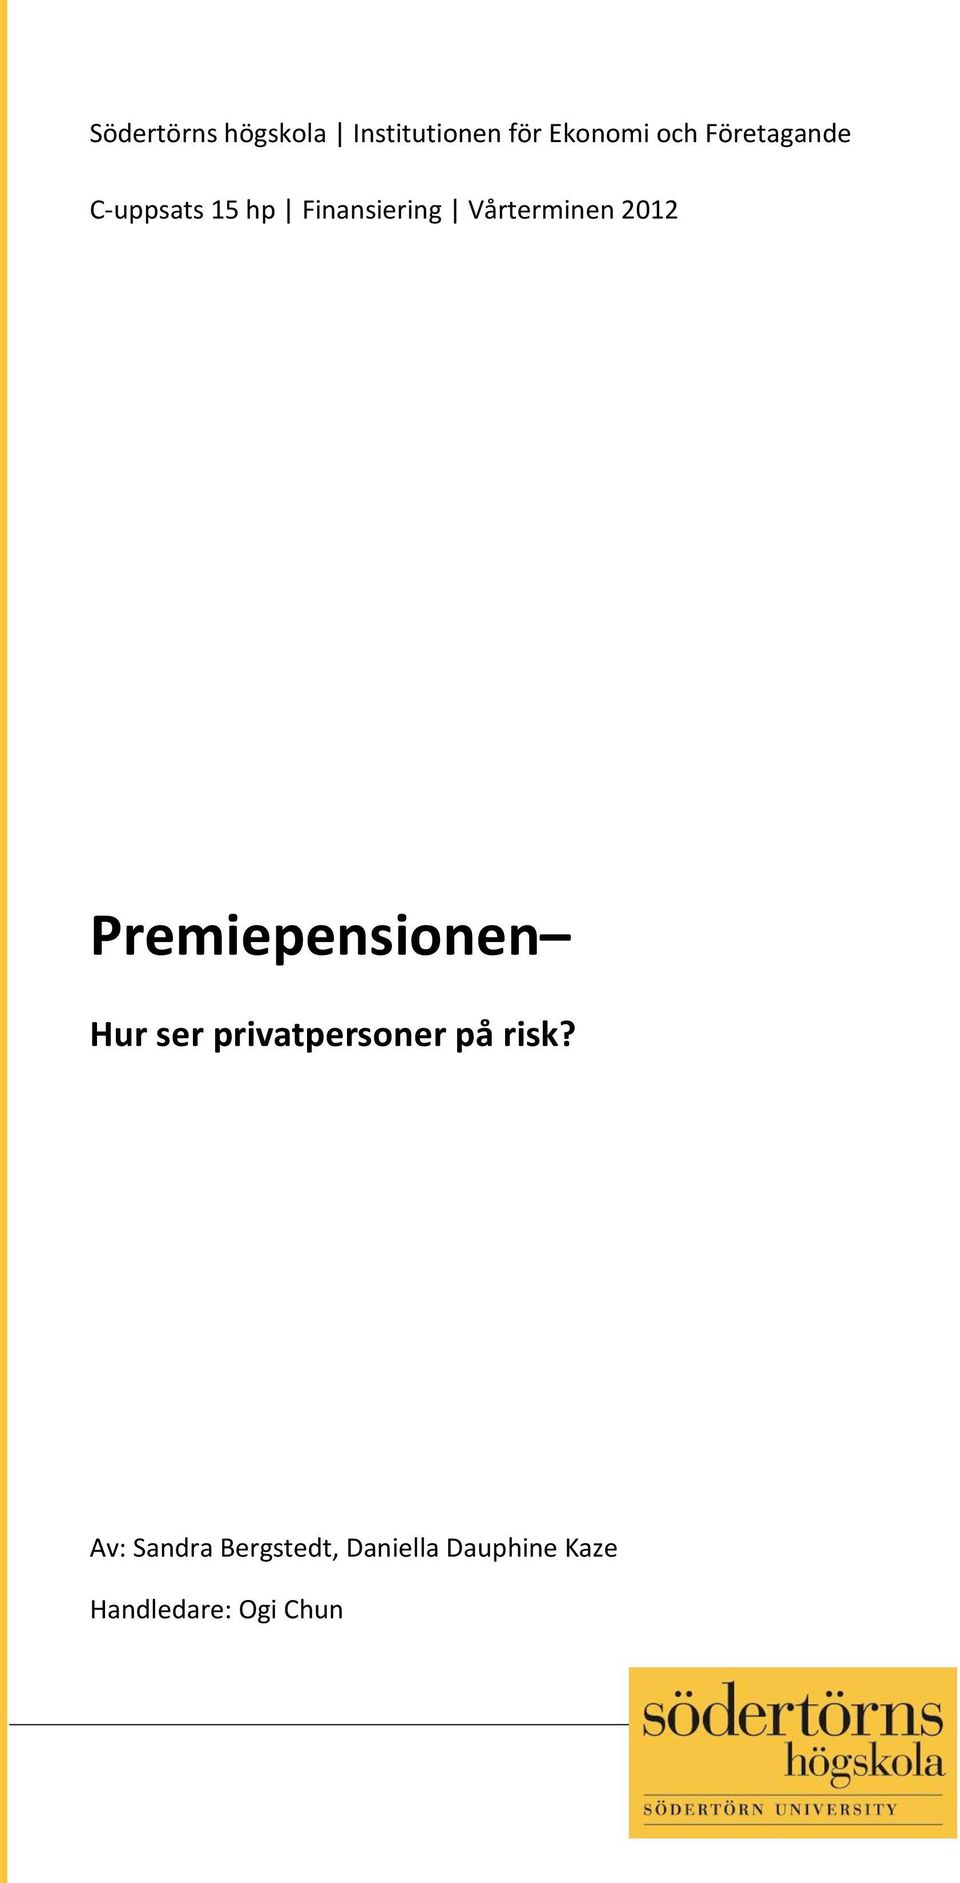 Premiepensionen Hur ser privatpersoner på risk?